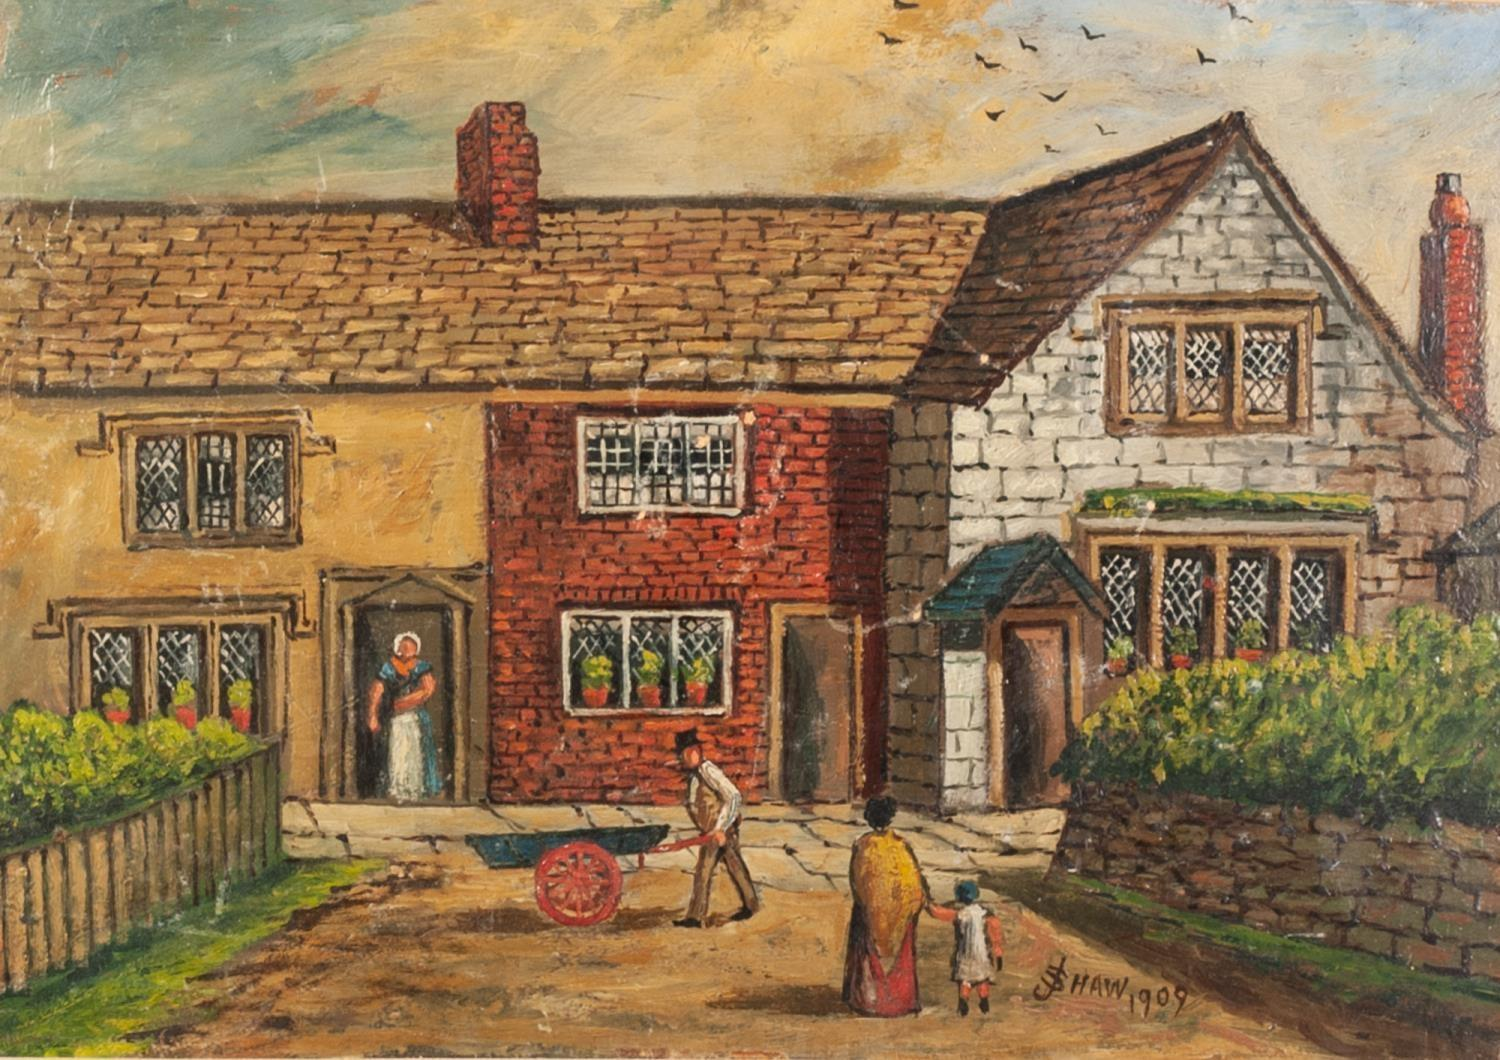 J SHAW 20th CENTURY OIL PAINTING Bygone street scene, figures by shops and public house top of - Image 2 of 2